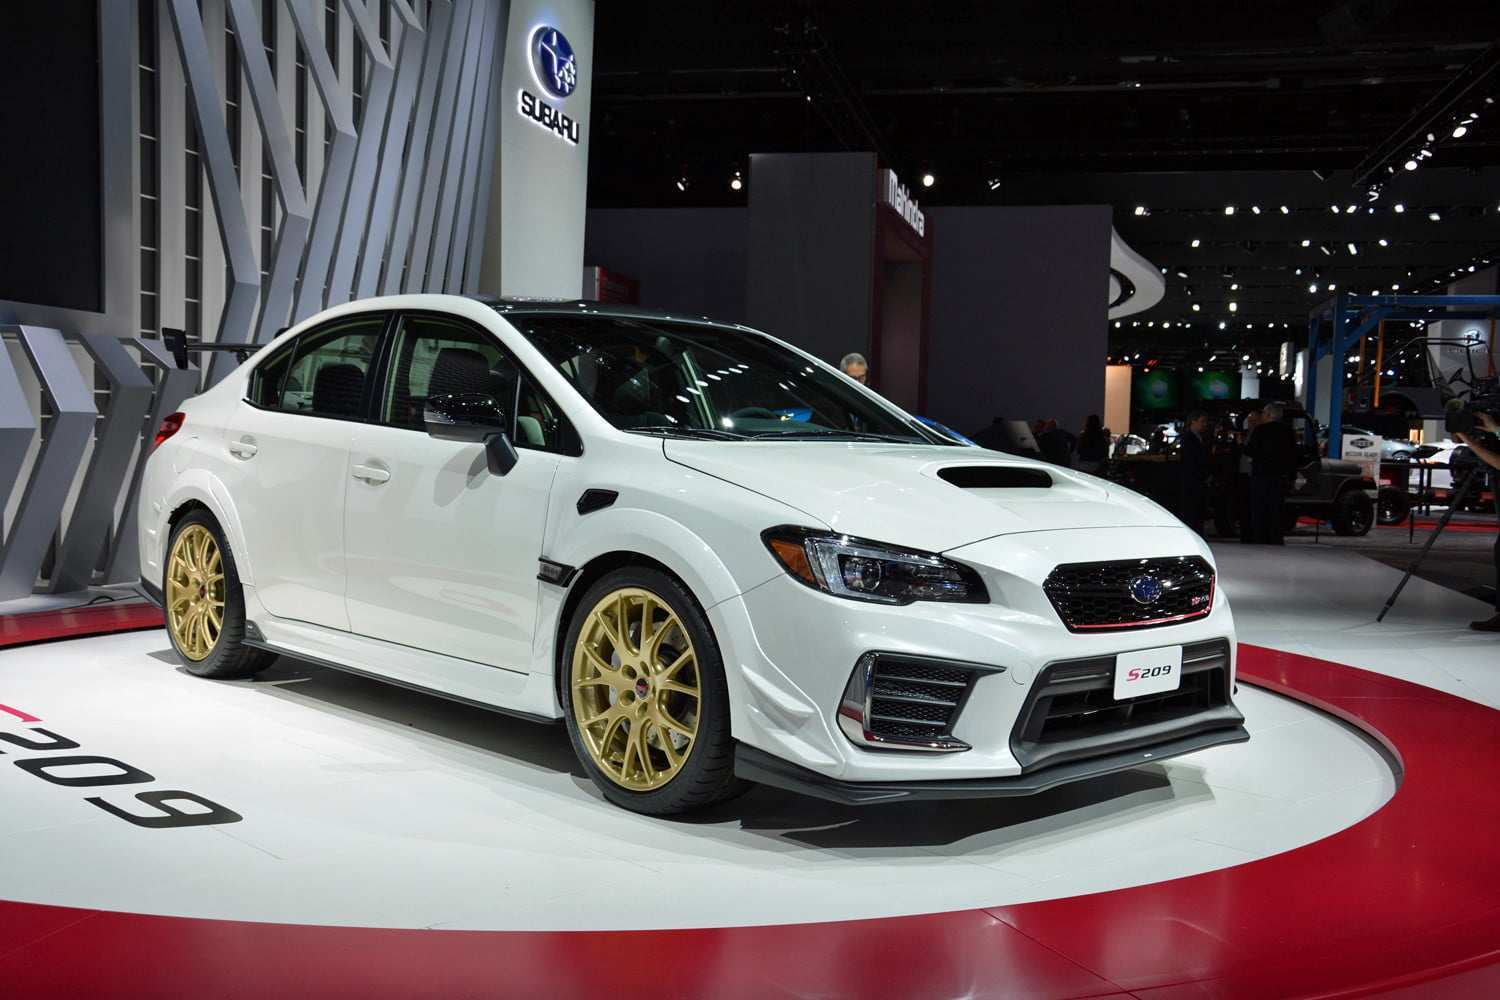 27 All New Subaru Sti 2020 Horsepower Price And Release Date